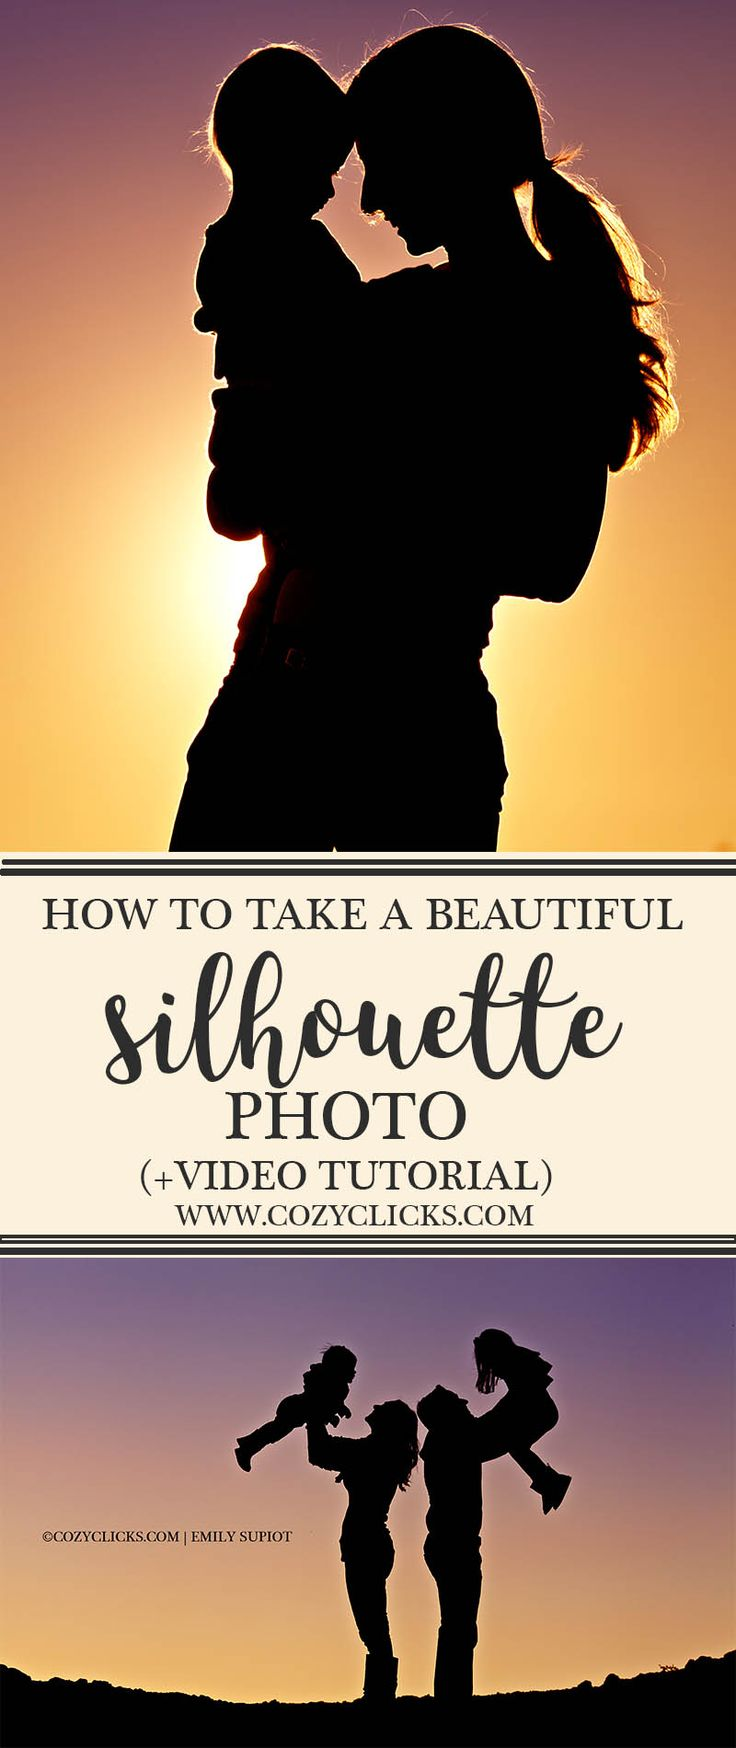 Do you want to know how to take a beautiful silhouette photo? Read here to see how and see a bonus video tutorial!